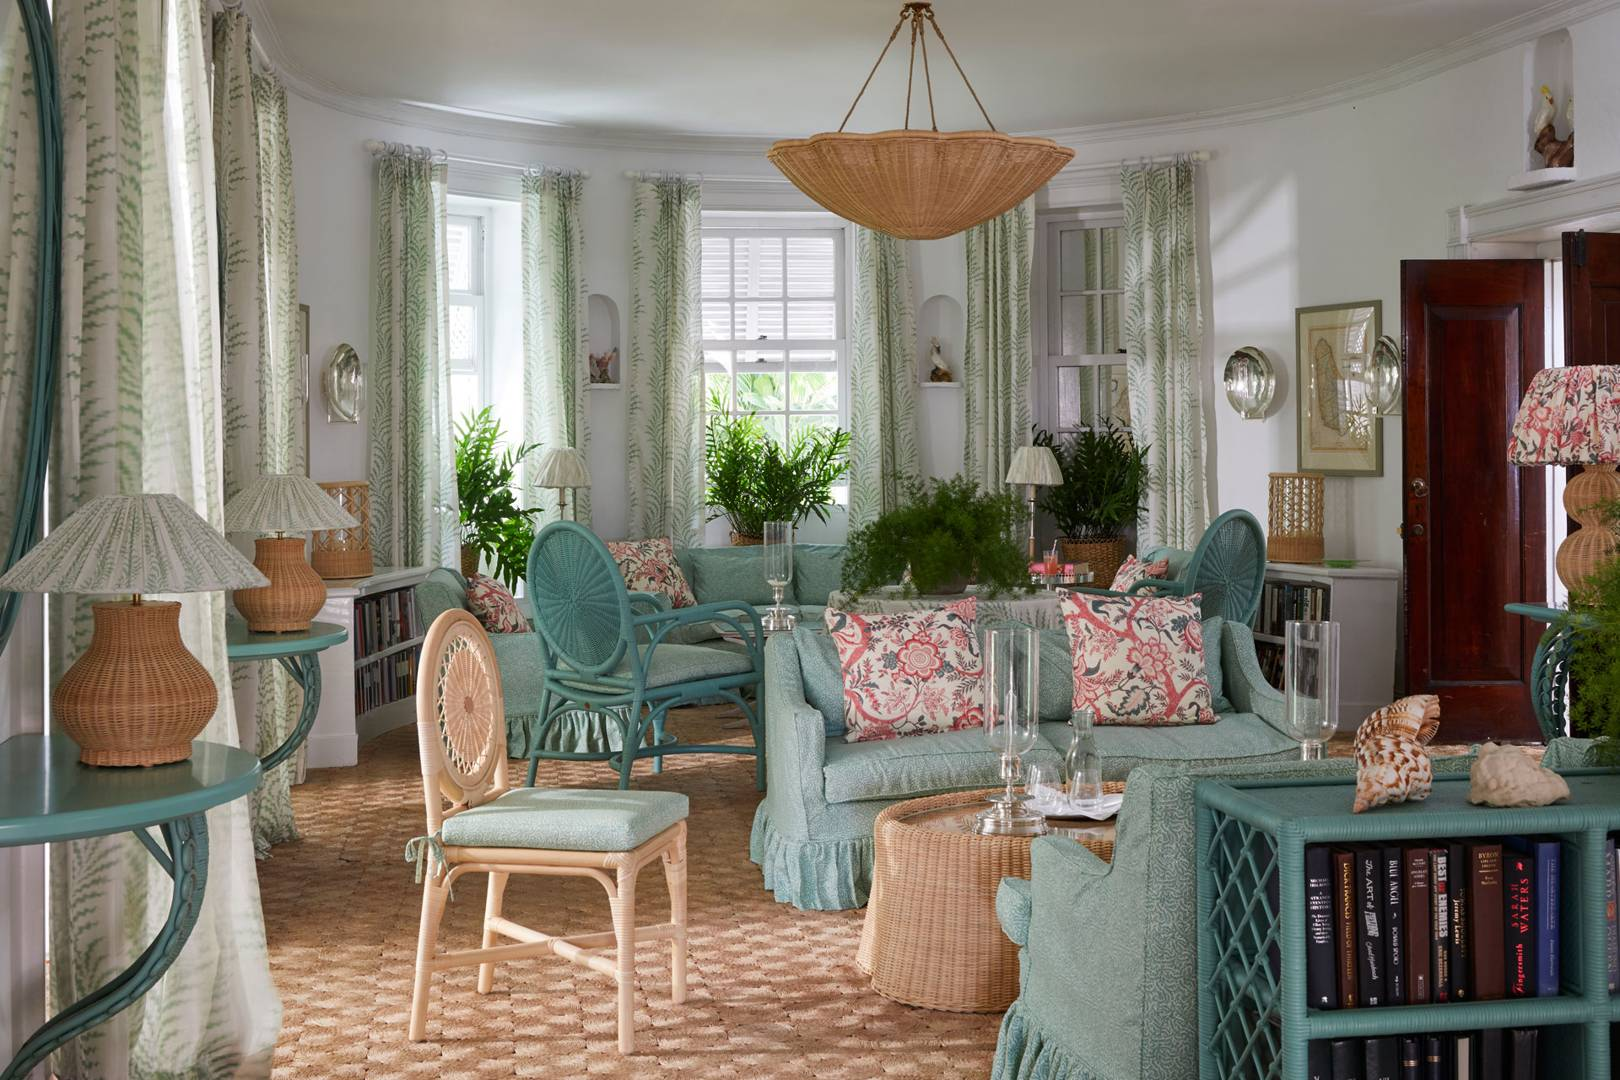 Soane Britain's new Cobblers Cove collection is the embodiment of tropical charm